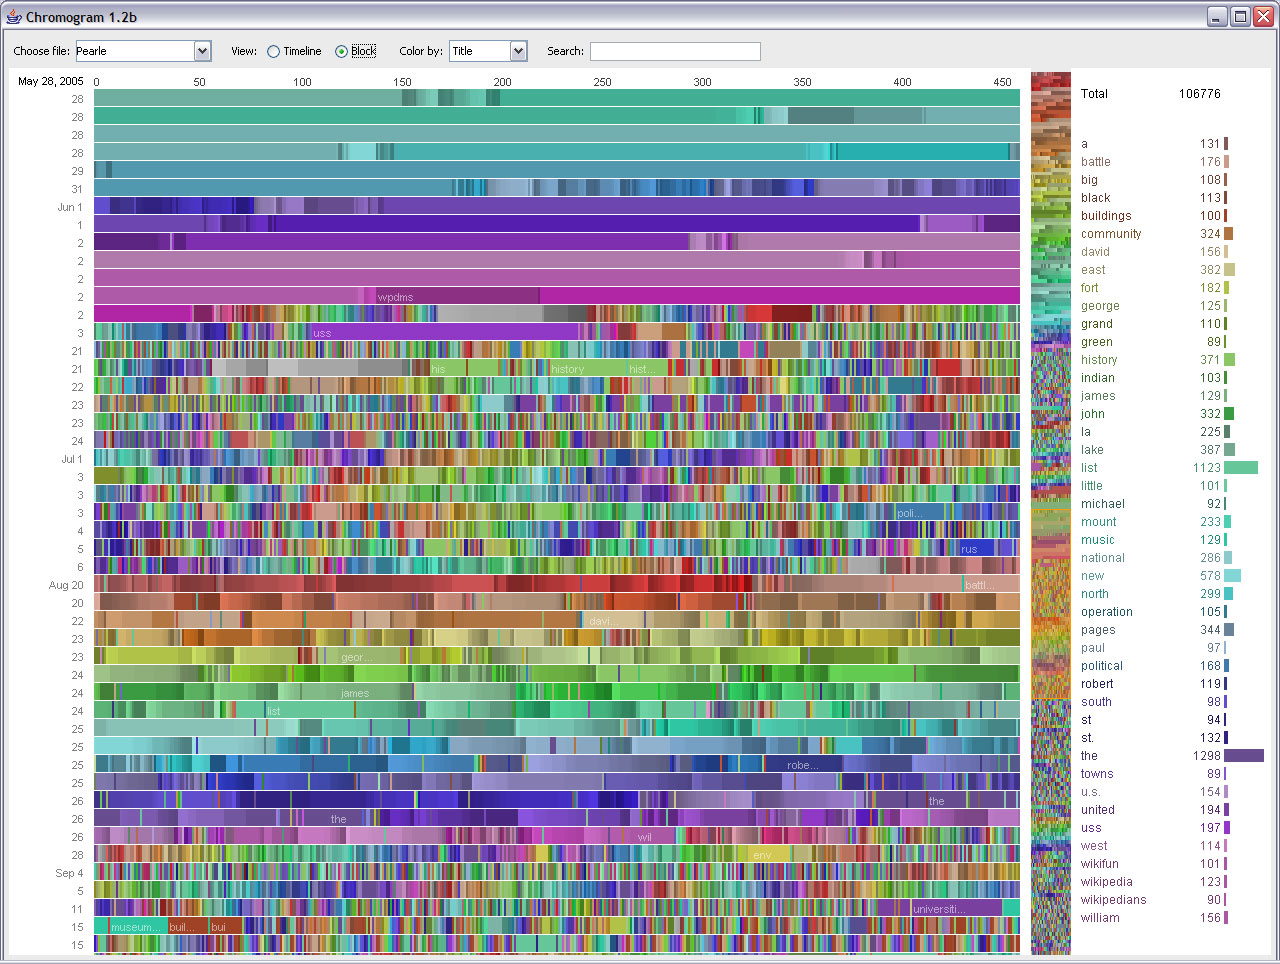 Chromogram from bot user, Pearle, showing rainbow patterns of alphabetical tasks